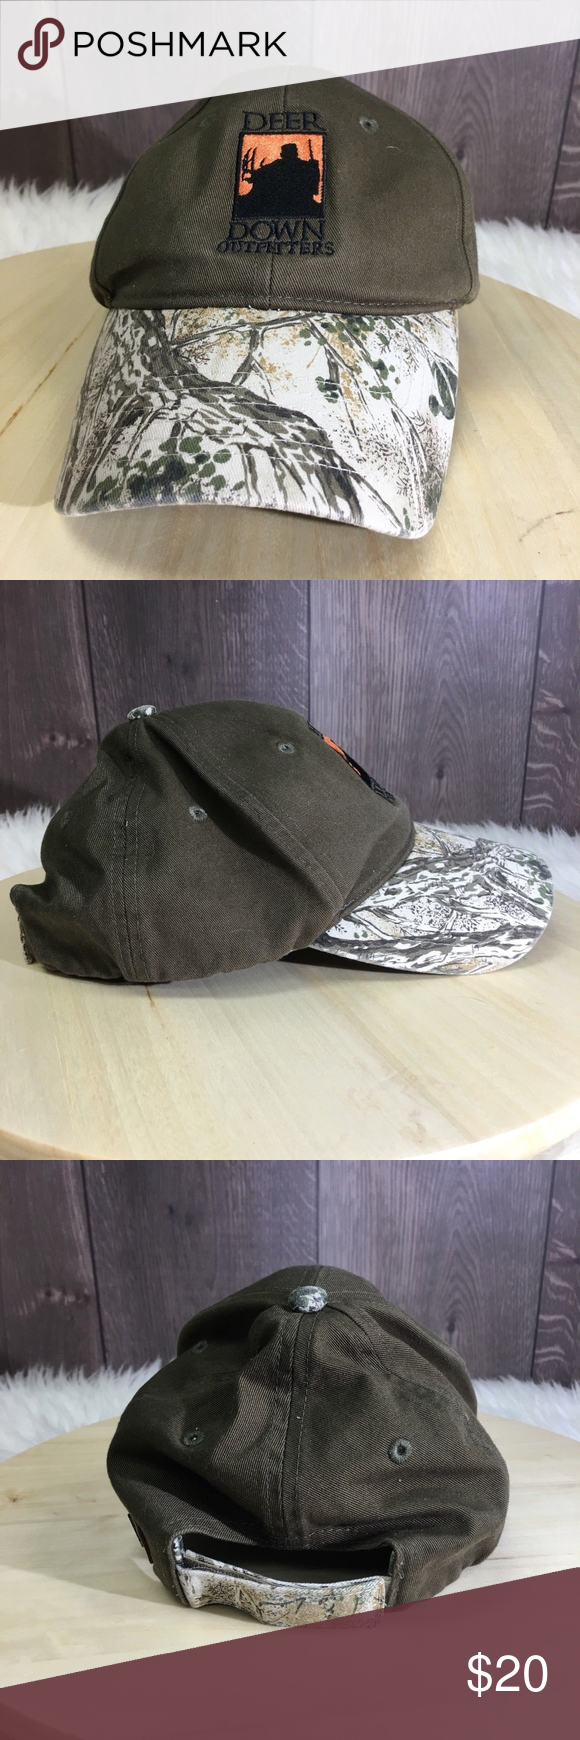 46a626856837f Deer Down Outfitters Game Guard Cap Camp Deer Down Outfitters Game Guard Cap  Adjustable Camo Accessories Hats